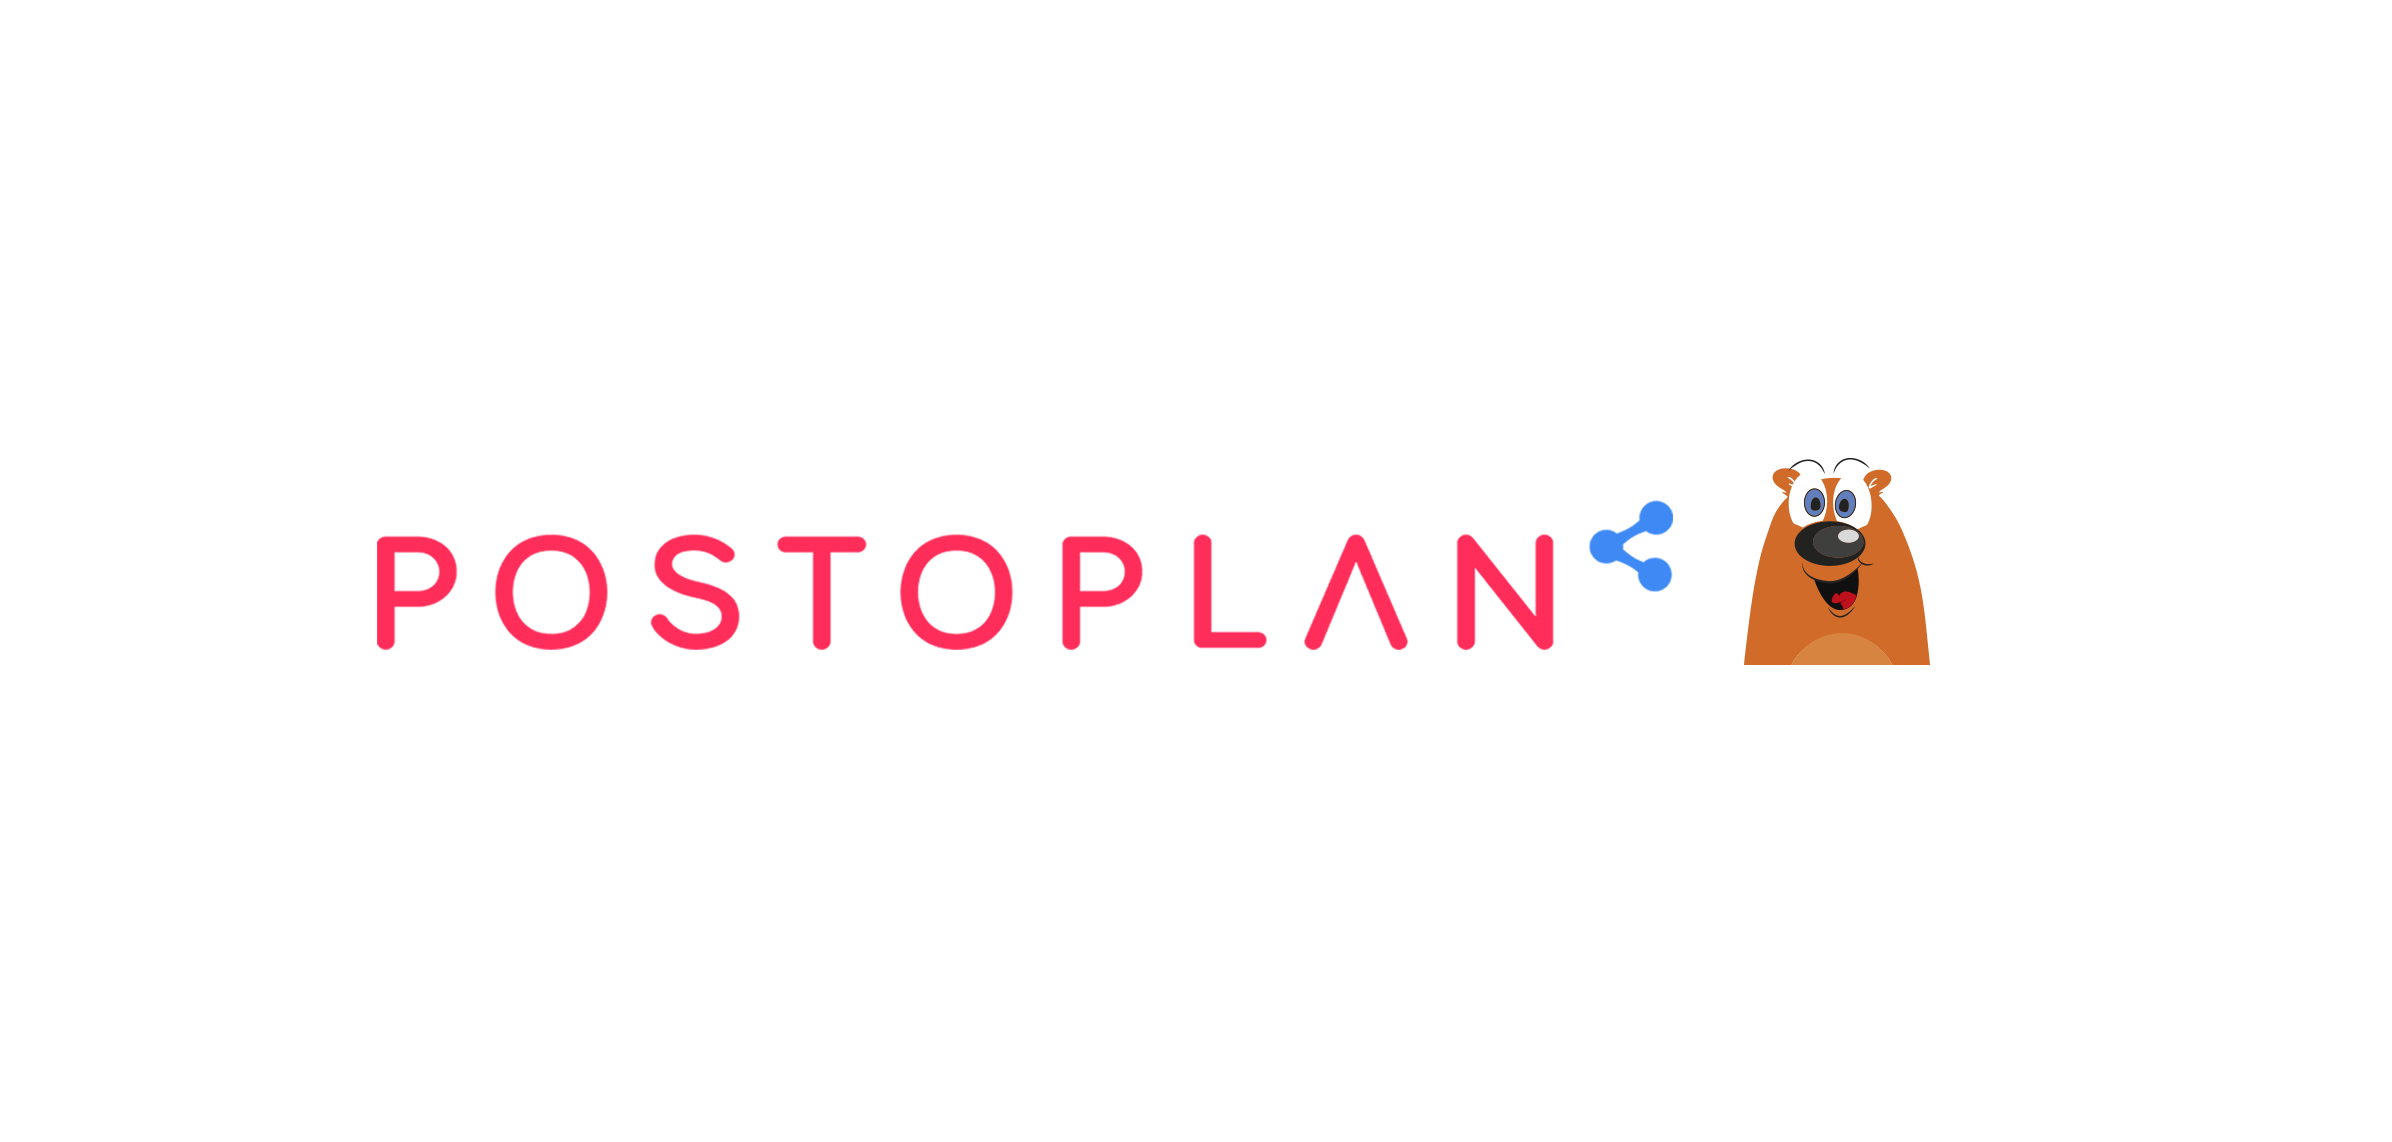 Postoplan, A Free, Zero-Tariff Management Platform for Social Networks and Messaging Apps Launched